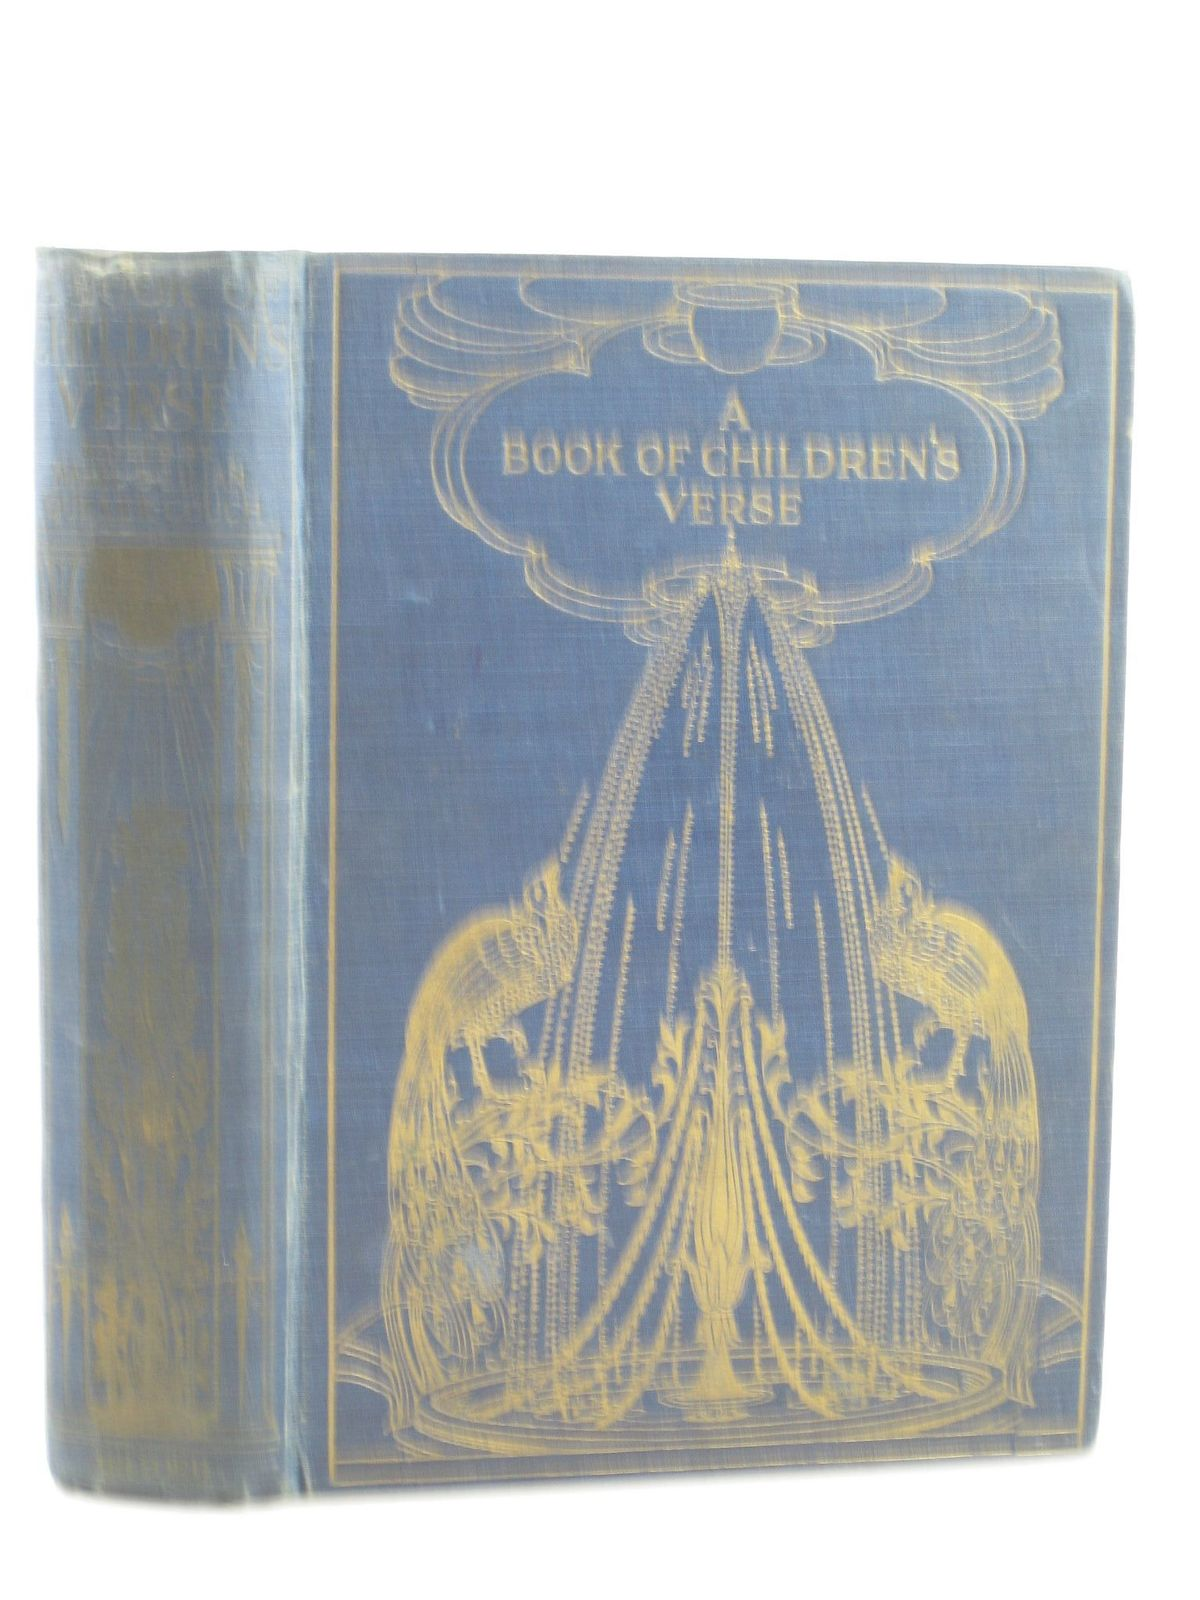 Photo of A BOOK OF CHILDREN'S VERSE written by Quiller-Couch, Mabel Quiller-Couch, Lilian illustrated by Gray, M. Etheldreda published by Hodder & Stoughton, Henry Frowde (STOCK CODE: 1311385)  for sale by Stella & Rose's Books